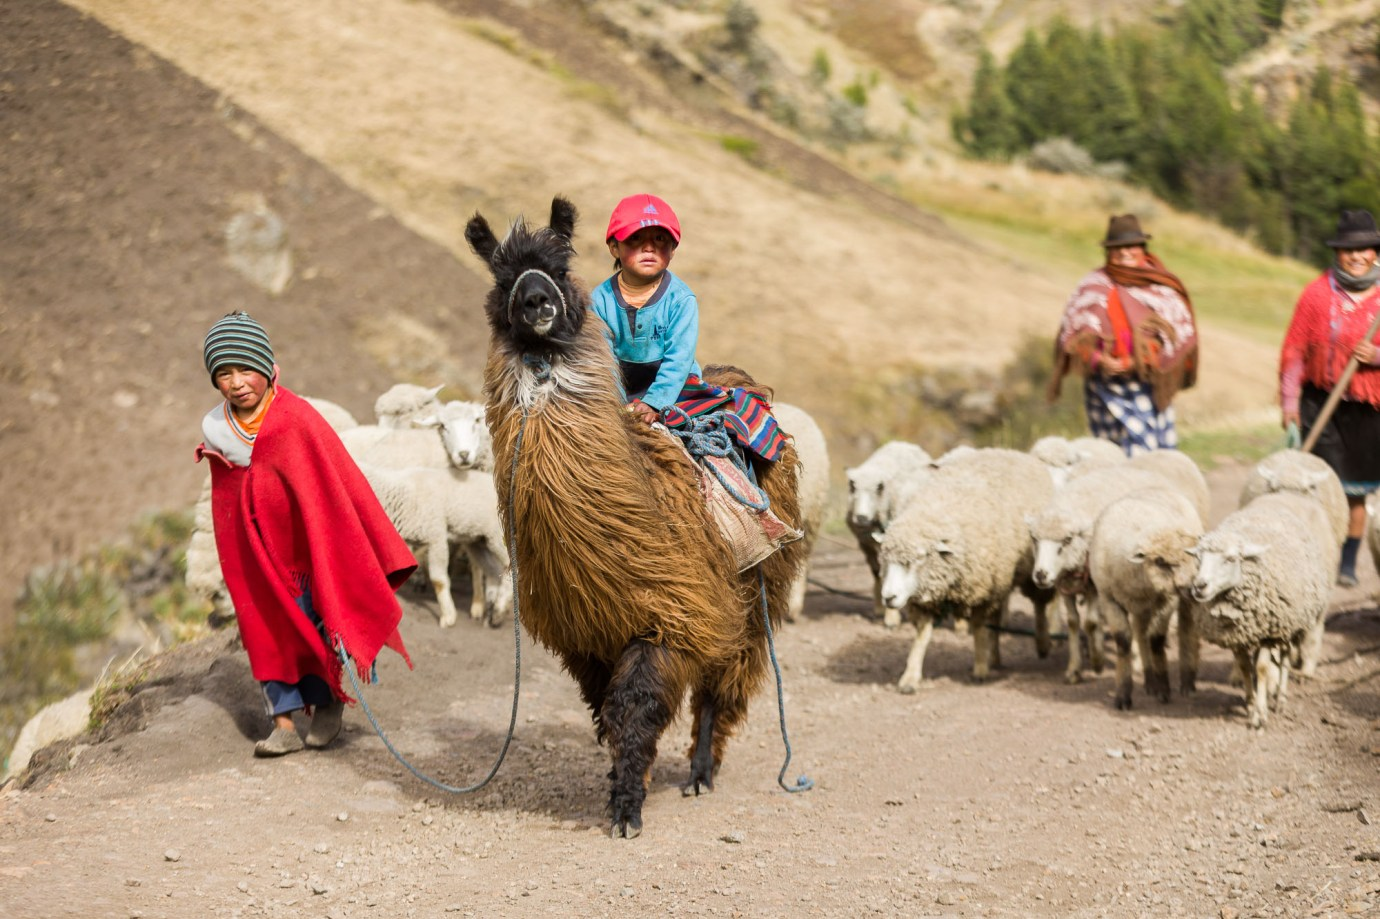 Joel (4) rides a llama through a village in Cotopaxi Province, Ecuador.